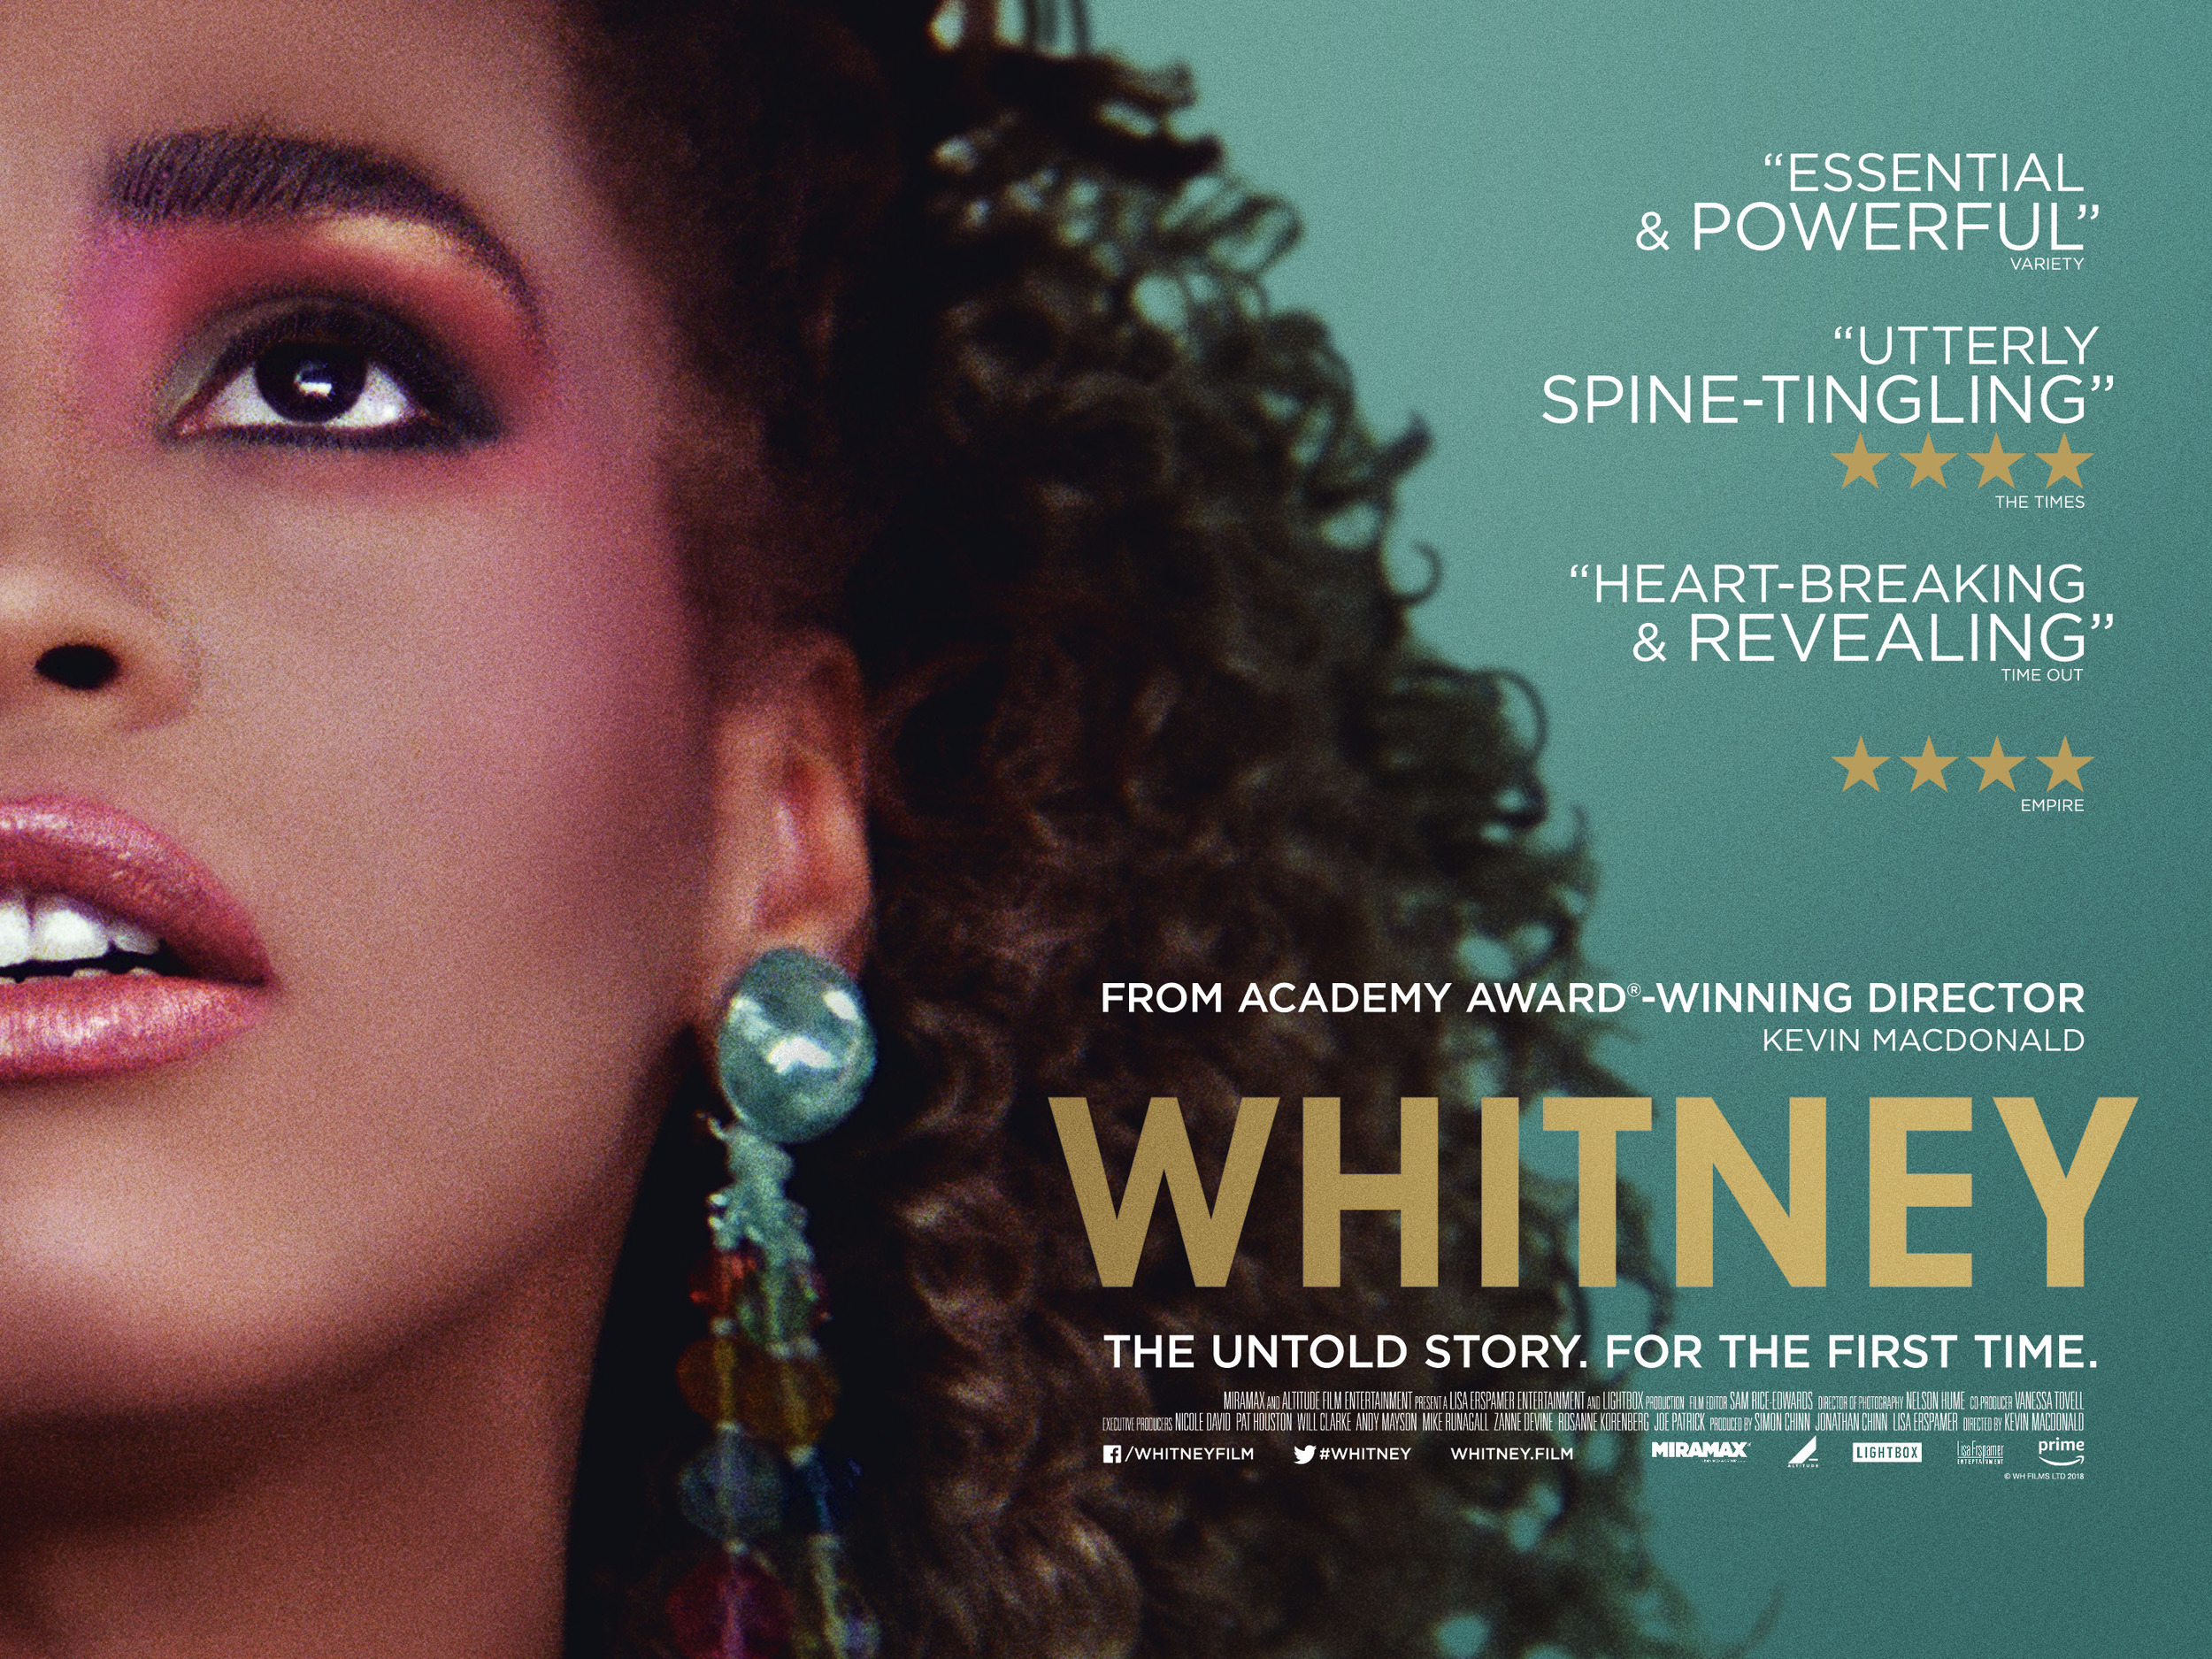 Review of Whitneyby Kathia Woods - Whitney is the biopic documentary about Whitney Houston. It covers her beginnings in Newark up to her untimely death in February of 2012. The movie dives into many of the unanswered questions about her private life and confirms so many of the rumors previously denied. She had a mother she wanted to emulate, a father that manipulated her love, brothers that took advantage and Clive Davis that erased as much of her blackness re branding her into his singing mannequin. All these elements contributed to her out of this world success. Even now twenty years later there is much discomfort when the movie discusses her relationship with a lost friend/girlfriend Robyn Crawford. Crawford who has remained silent on her relationship with Whitney declined to participate in the documentary. Bobby Brown makes an appearance, however, is very reluctant to discuss the addiction portion of their relationship. The person that stands out the most is her assistant Mary Jones. Ms. Jones is incredibly honest when she speaks about Whitney's challenges but also endearing. She seems to be one of the few people that genuinely loved her. A family is supposed to protect you from your demons not enable them. Michael and Gary, her brothers, are forced upon her professional circle via her father, John Houston. Neither seems to take responsibility for their part of her undoing. What is evident throughout this entire movie there weren't many moments of sheer happiness for Whitney. The more famous she became, the more alone she felt. This movie gives you a better understanding of the beast that's fame. She gave us so many extraordinary moments, yet we failed her when she needed us the most.